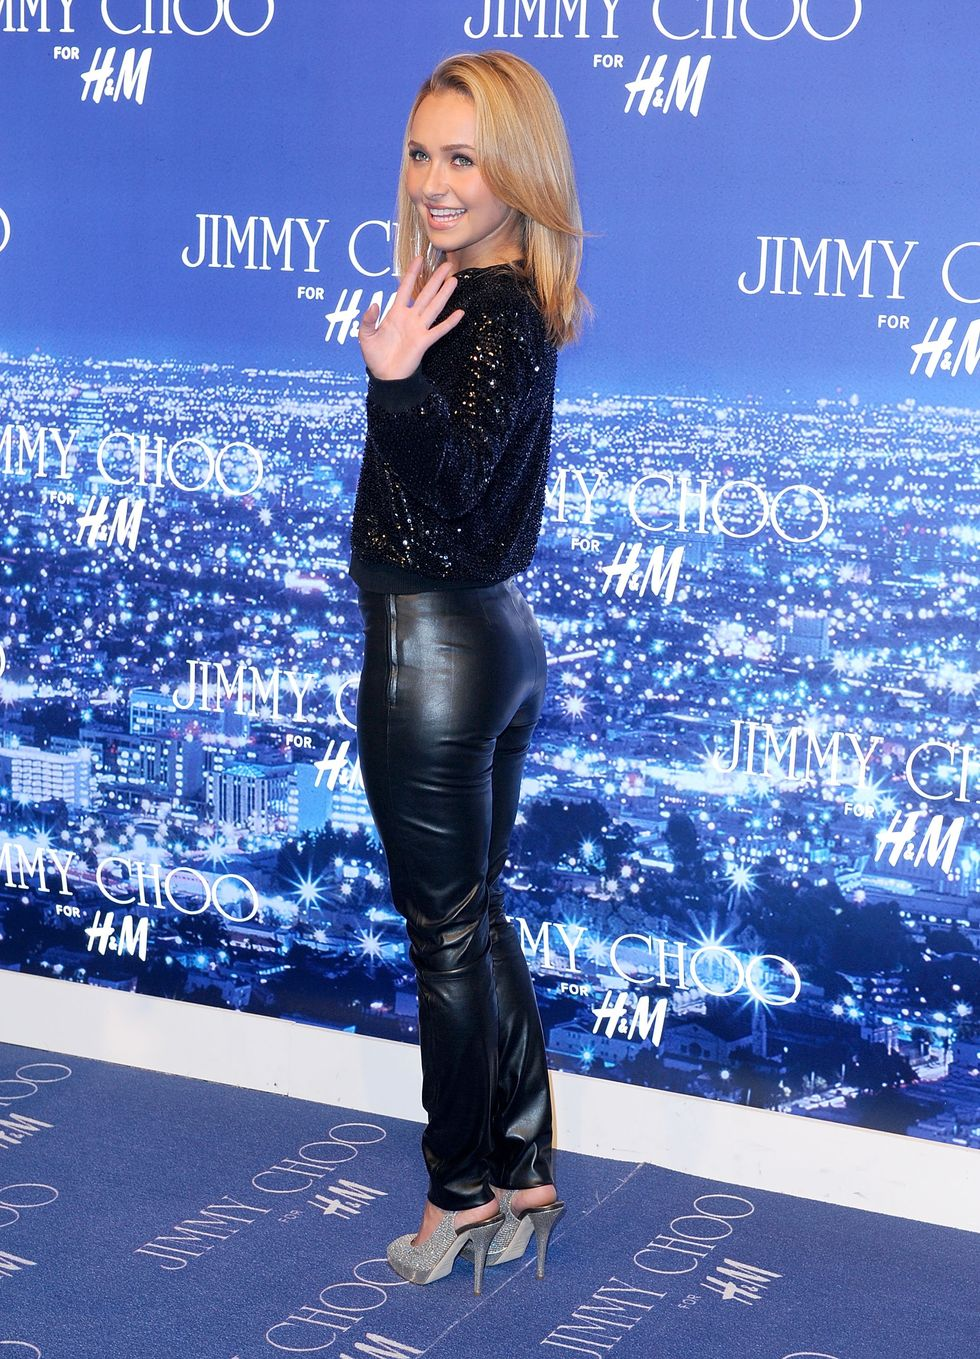 hayden-panettiere-jimmy-choo-for-hm-collection-exclusive-launch-01